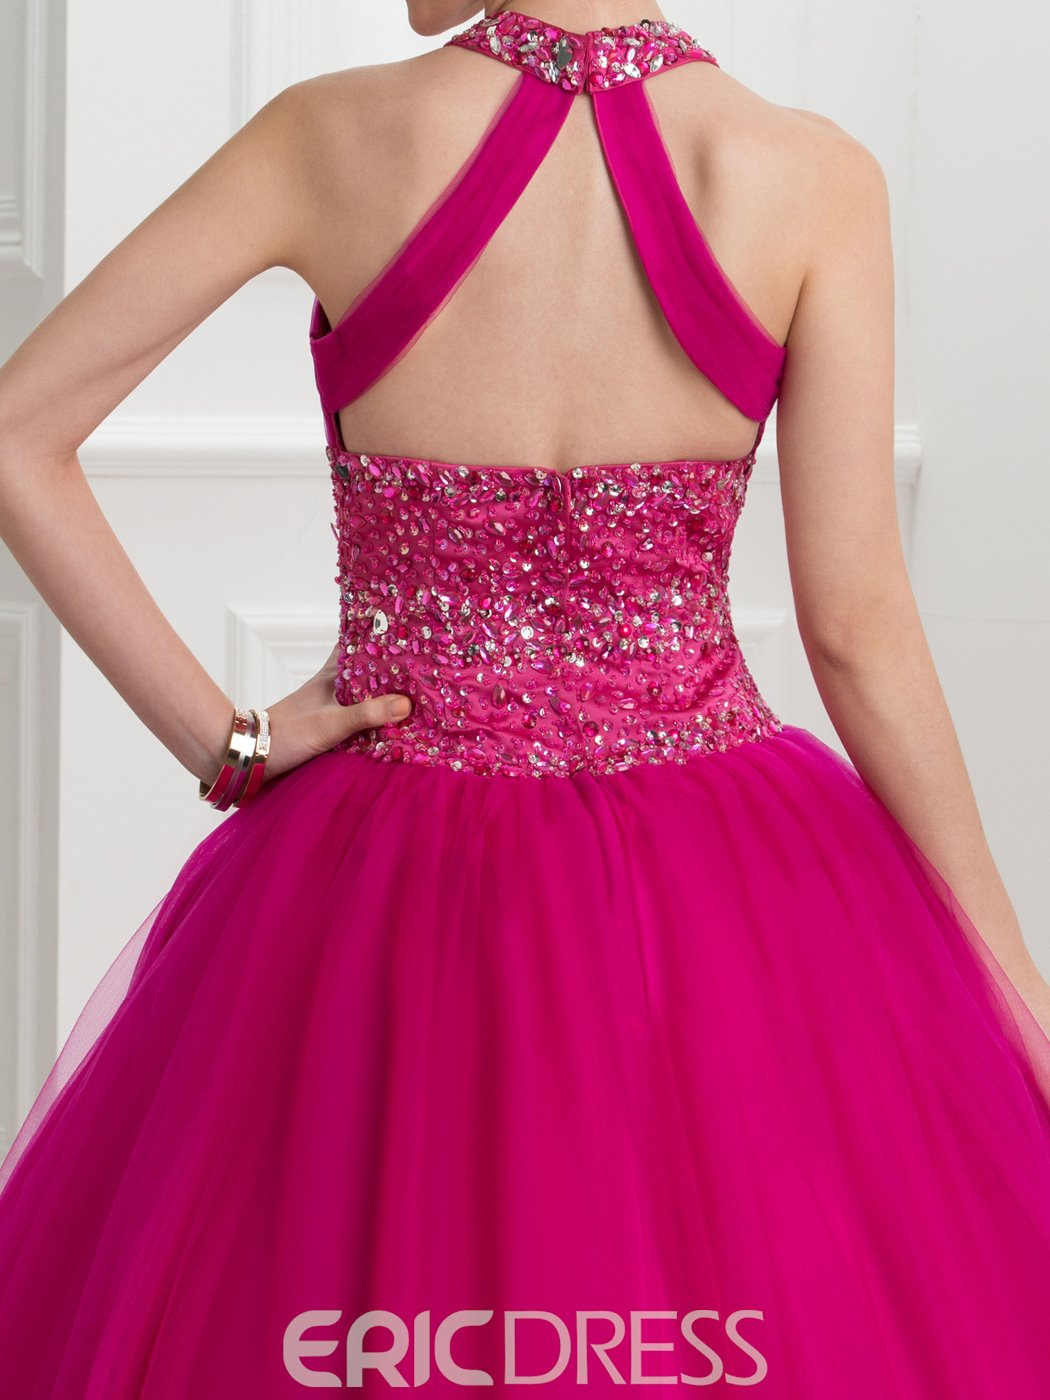 Ericdress Halter Beading Sequins Hollow Ball Gown Quinceanera